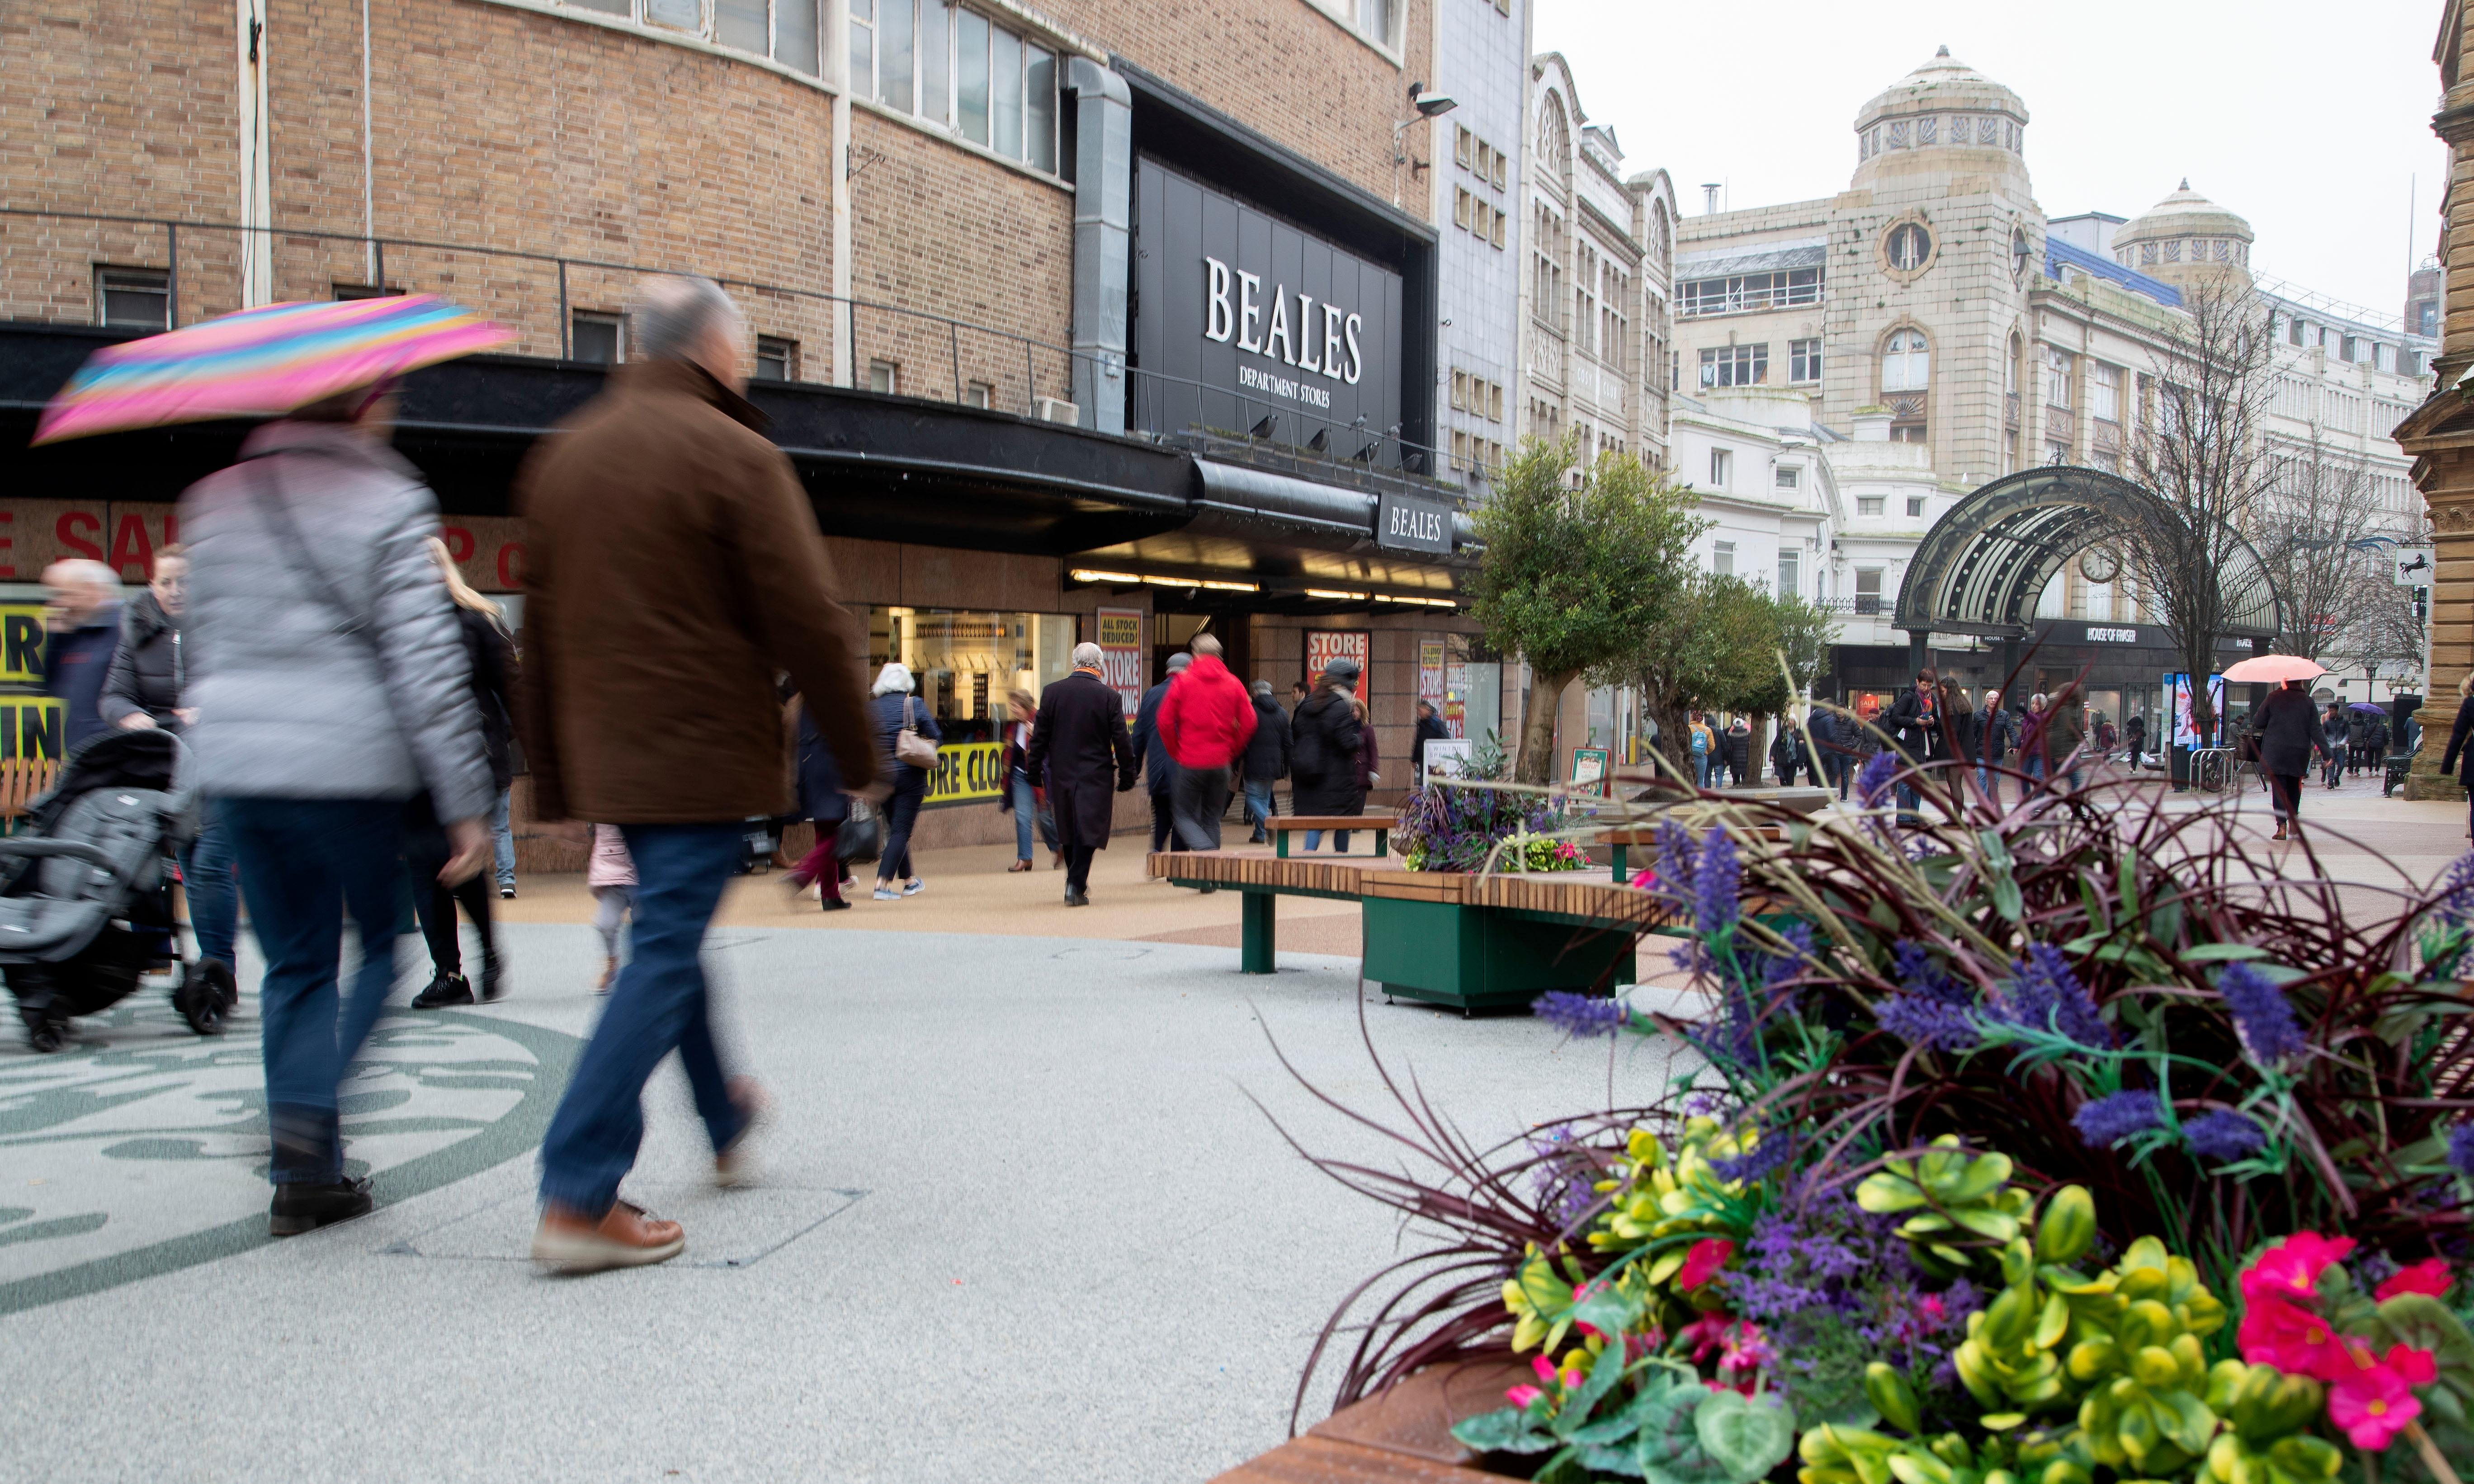 'Beales is part of our history': shoppers on landmark store's woes